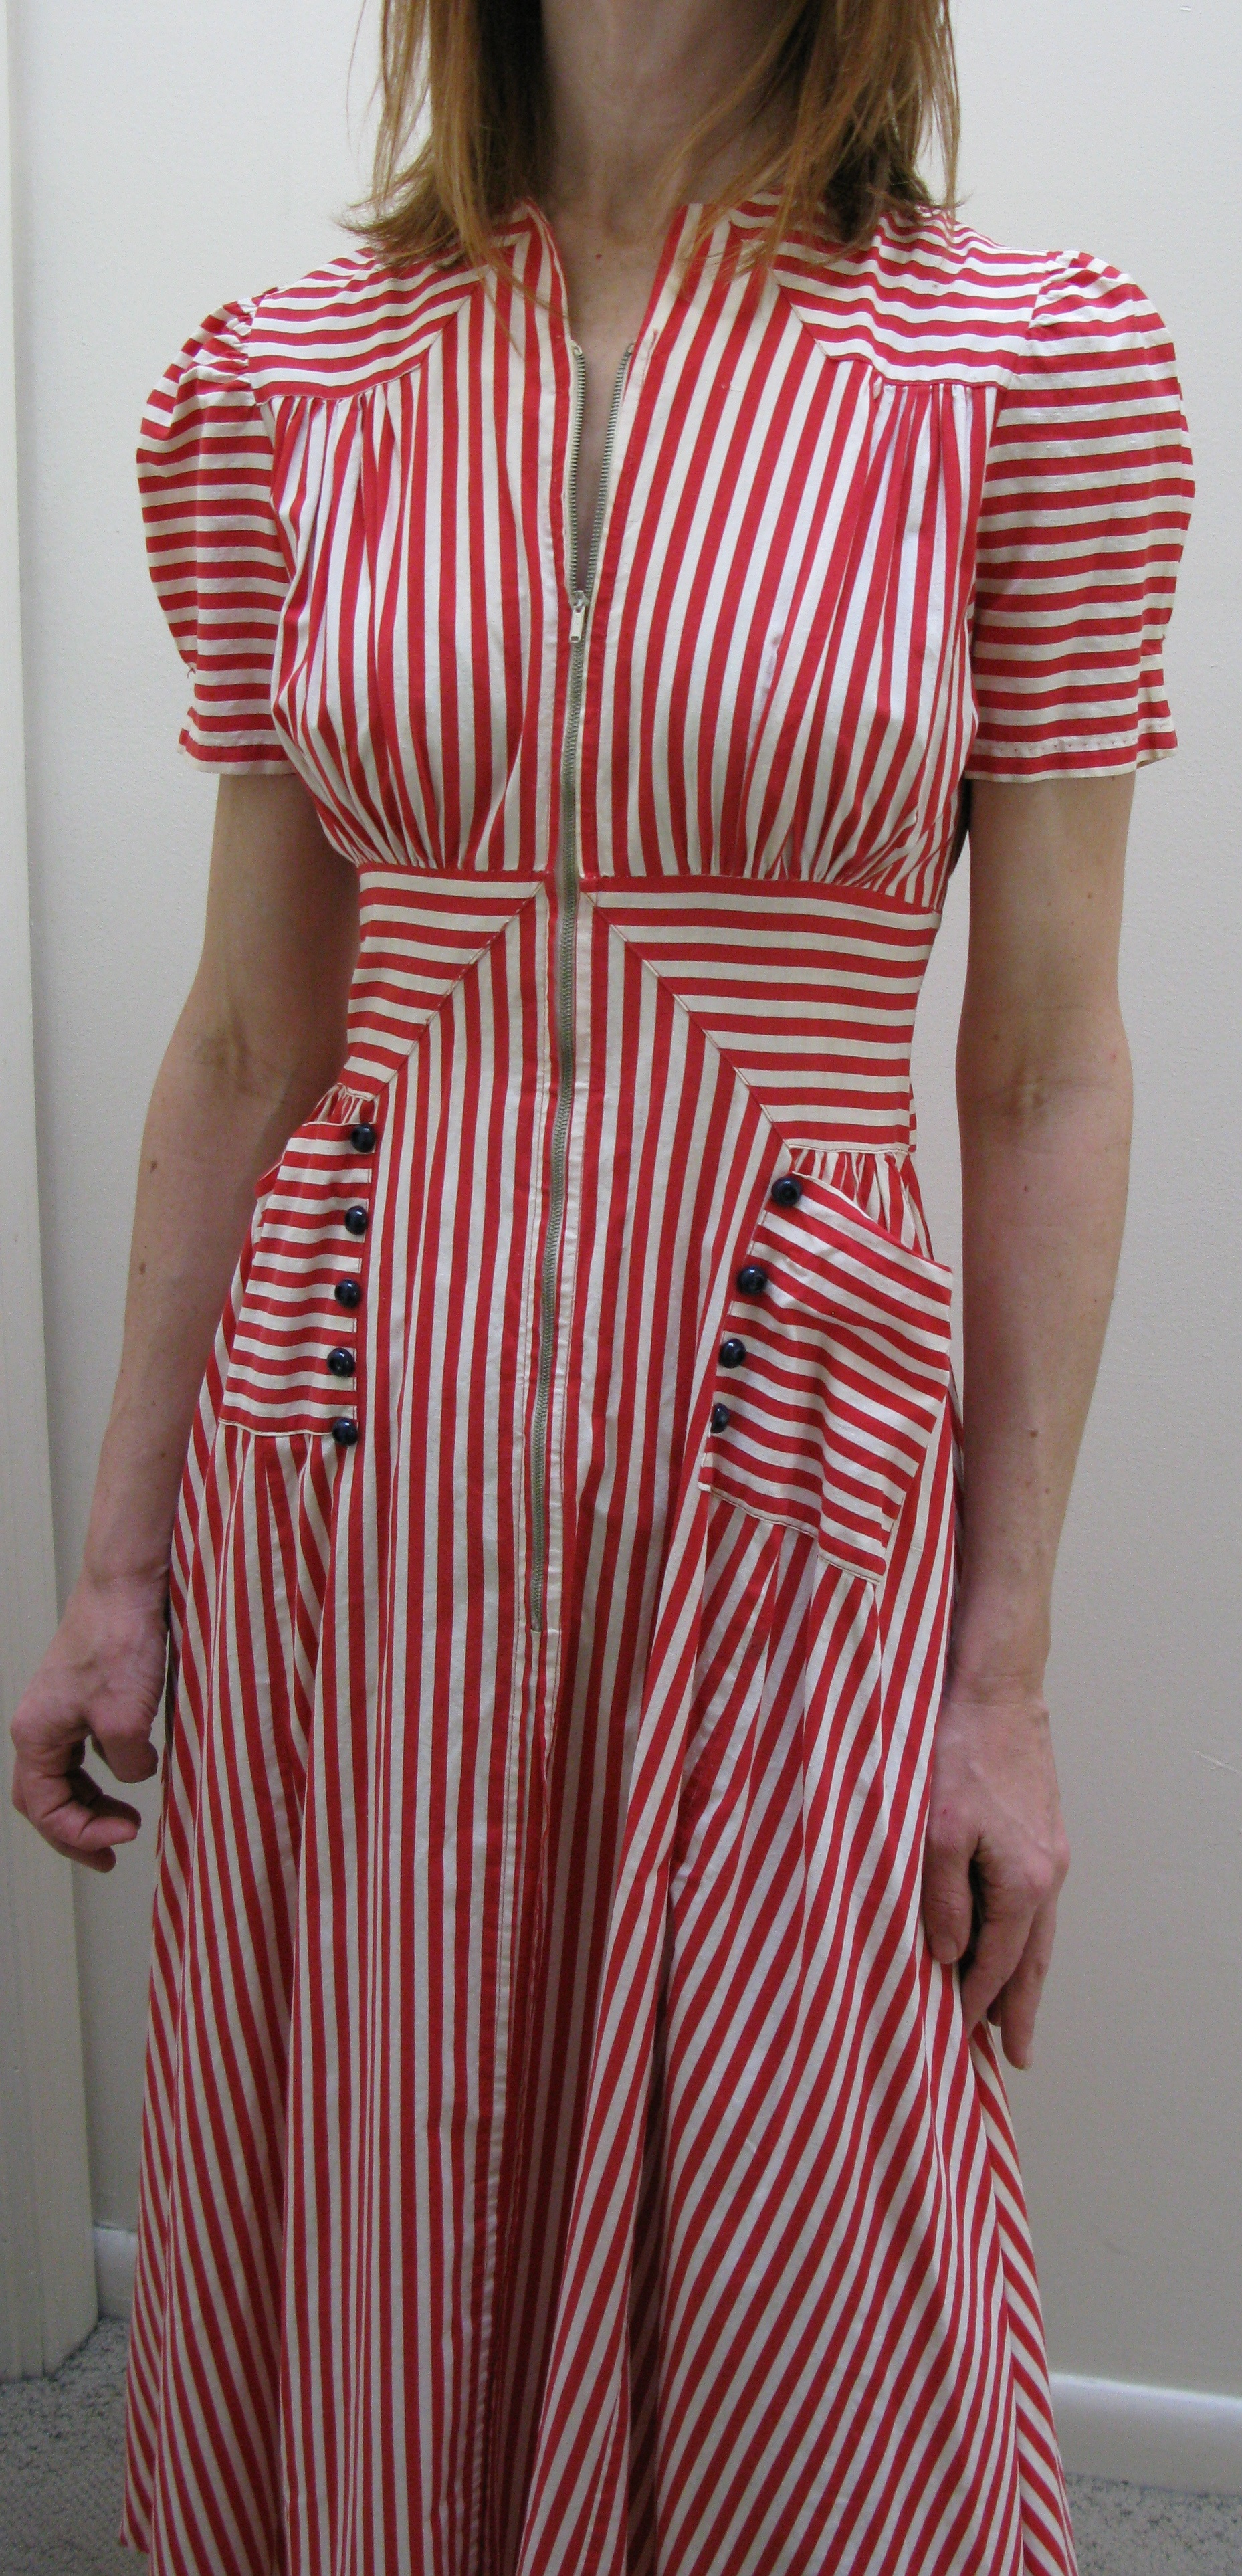 40s striped dress with pockets